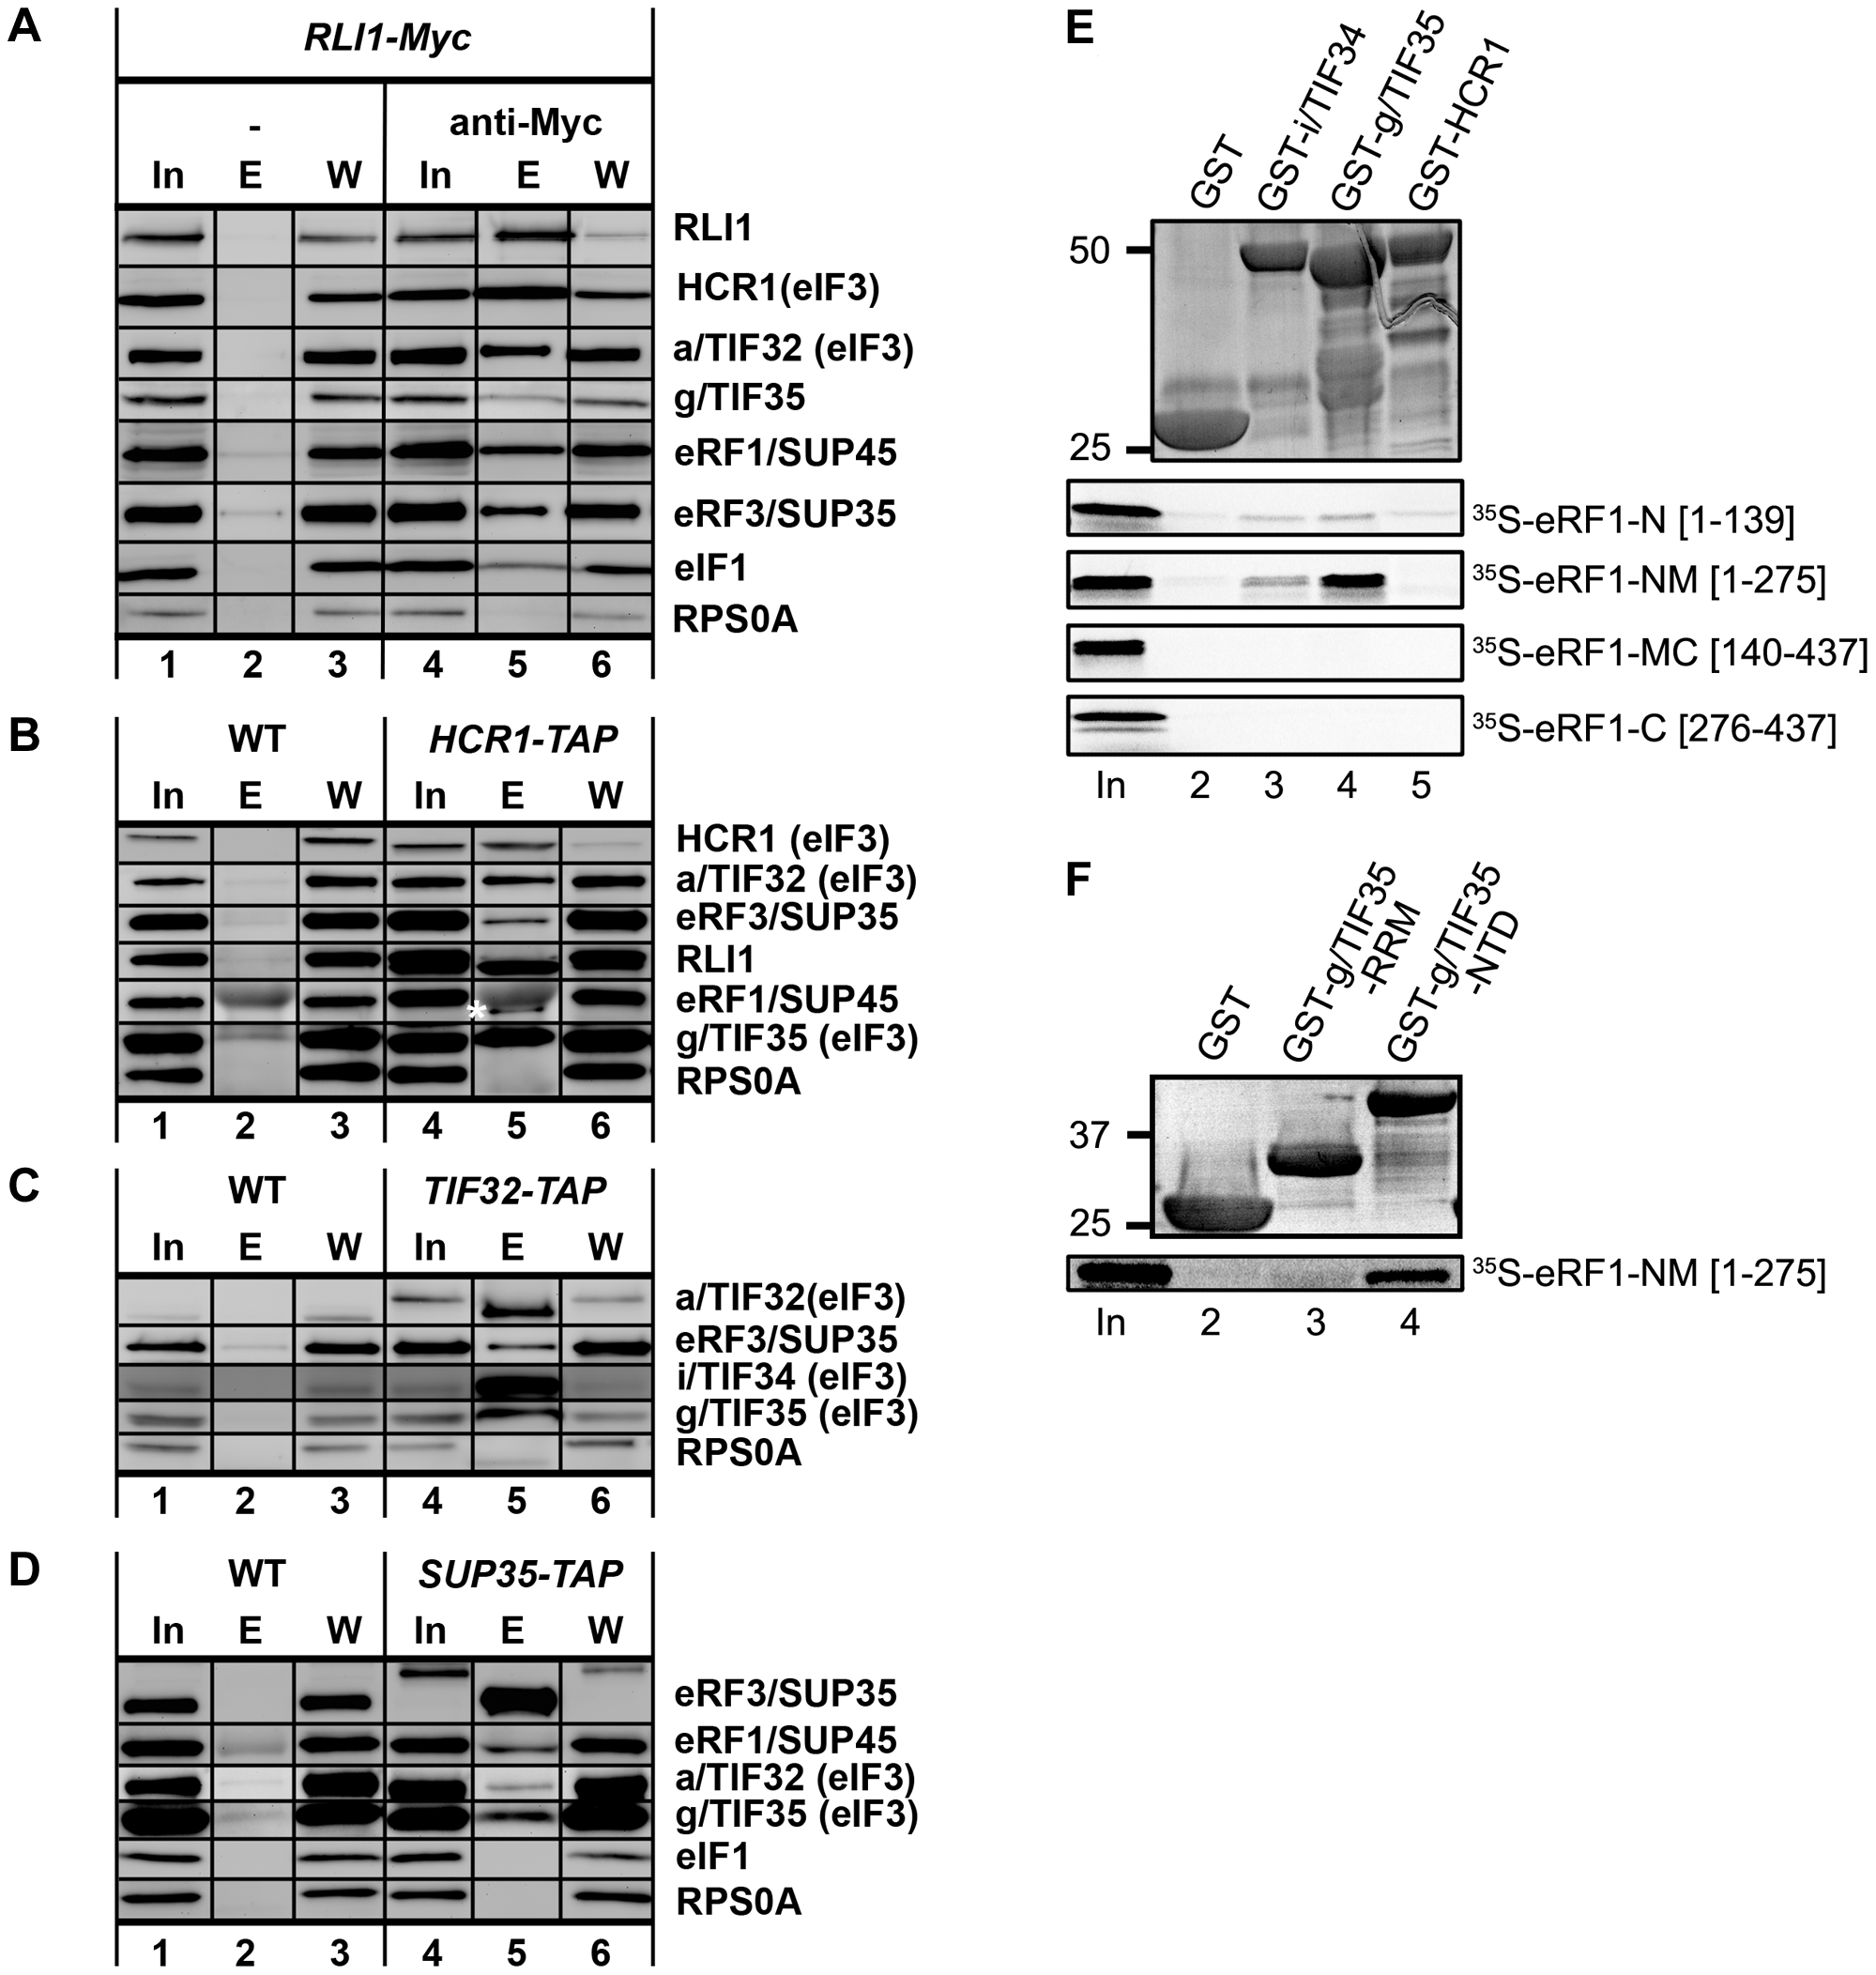 Complexes containing eIF3, HCR1, ABCE1/RLI1 and both eRFs, free of ribosomes and RNA, occur <i>in vivo</i>; and the NTD of g/TIF35 and i/TIF34 directly interact with the N and M domains of eRF1.